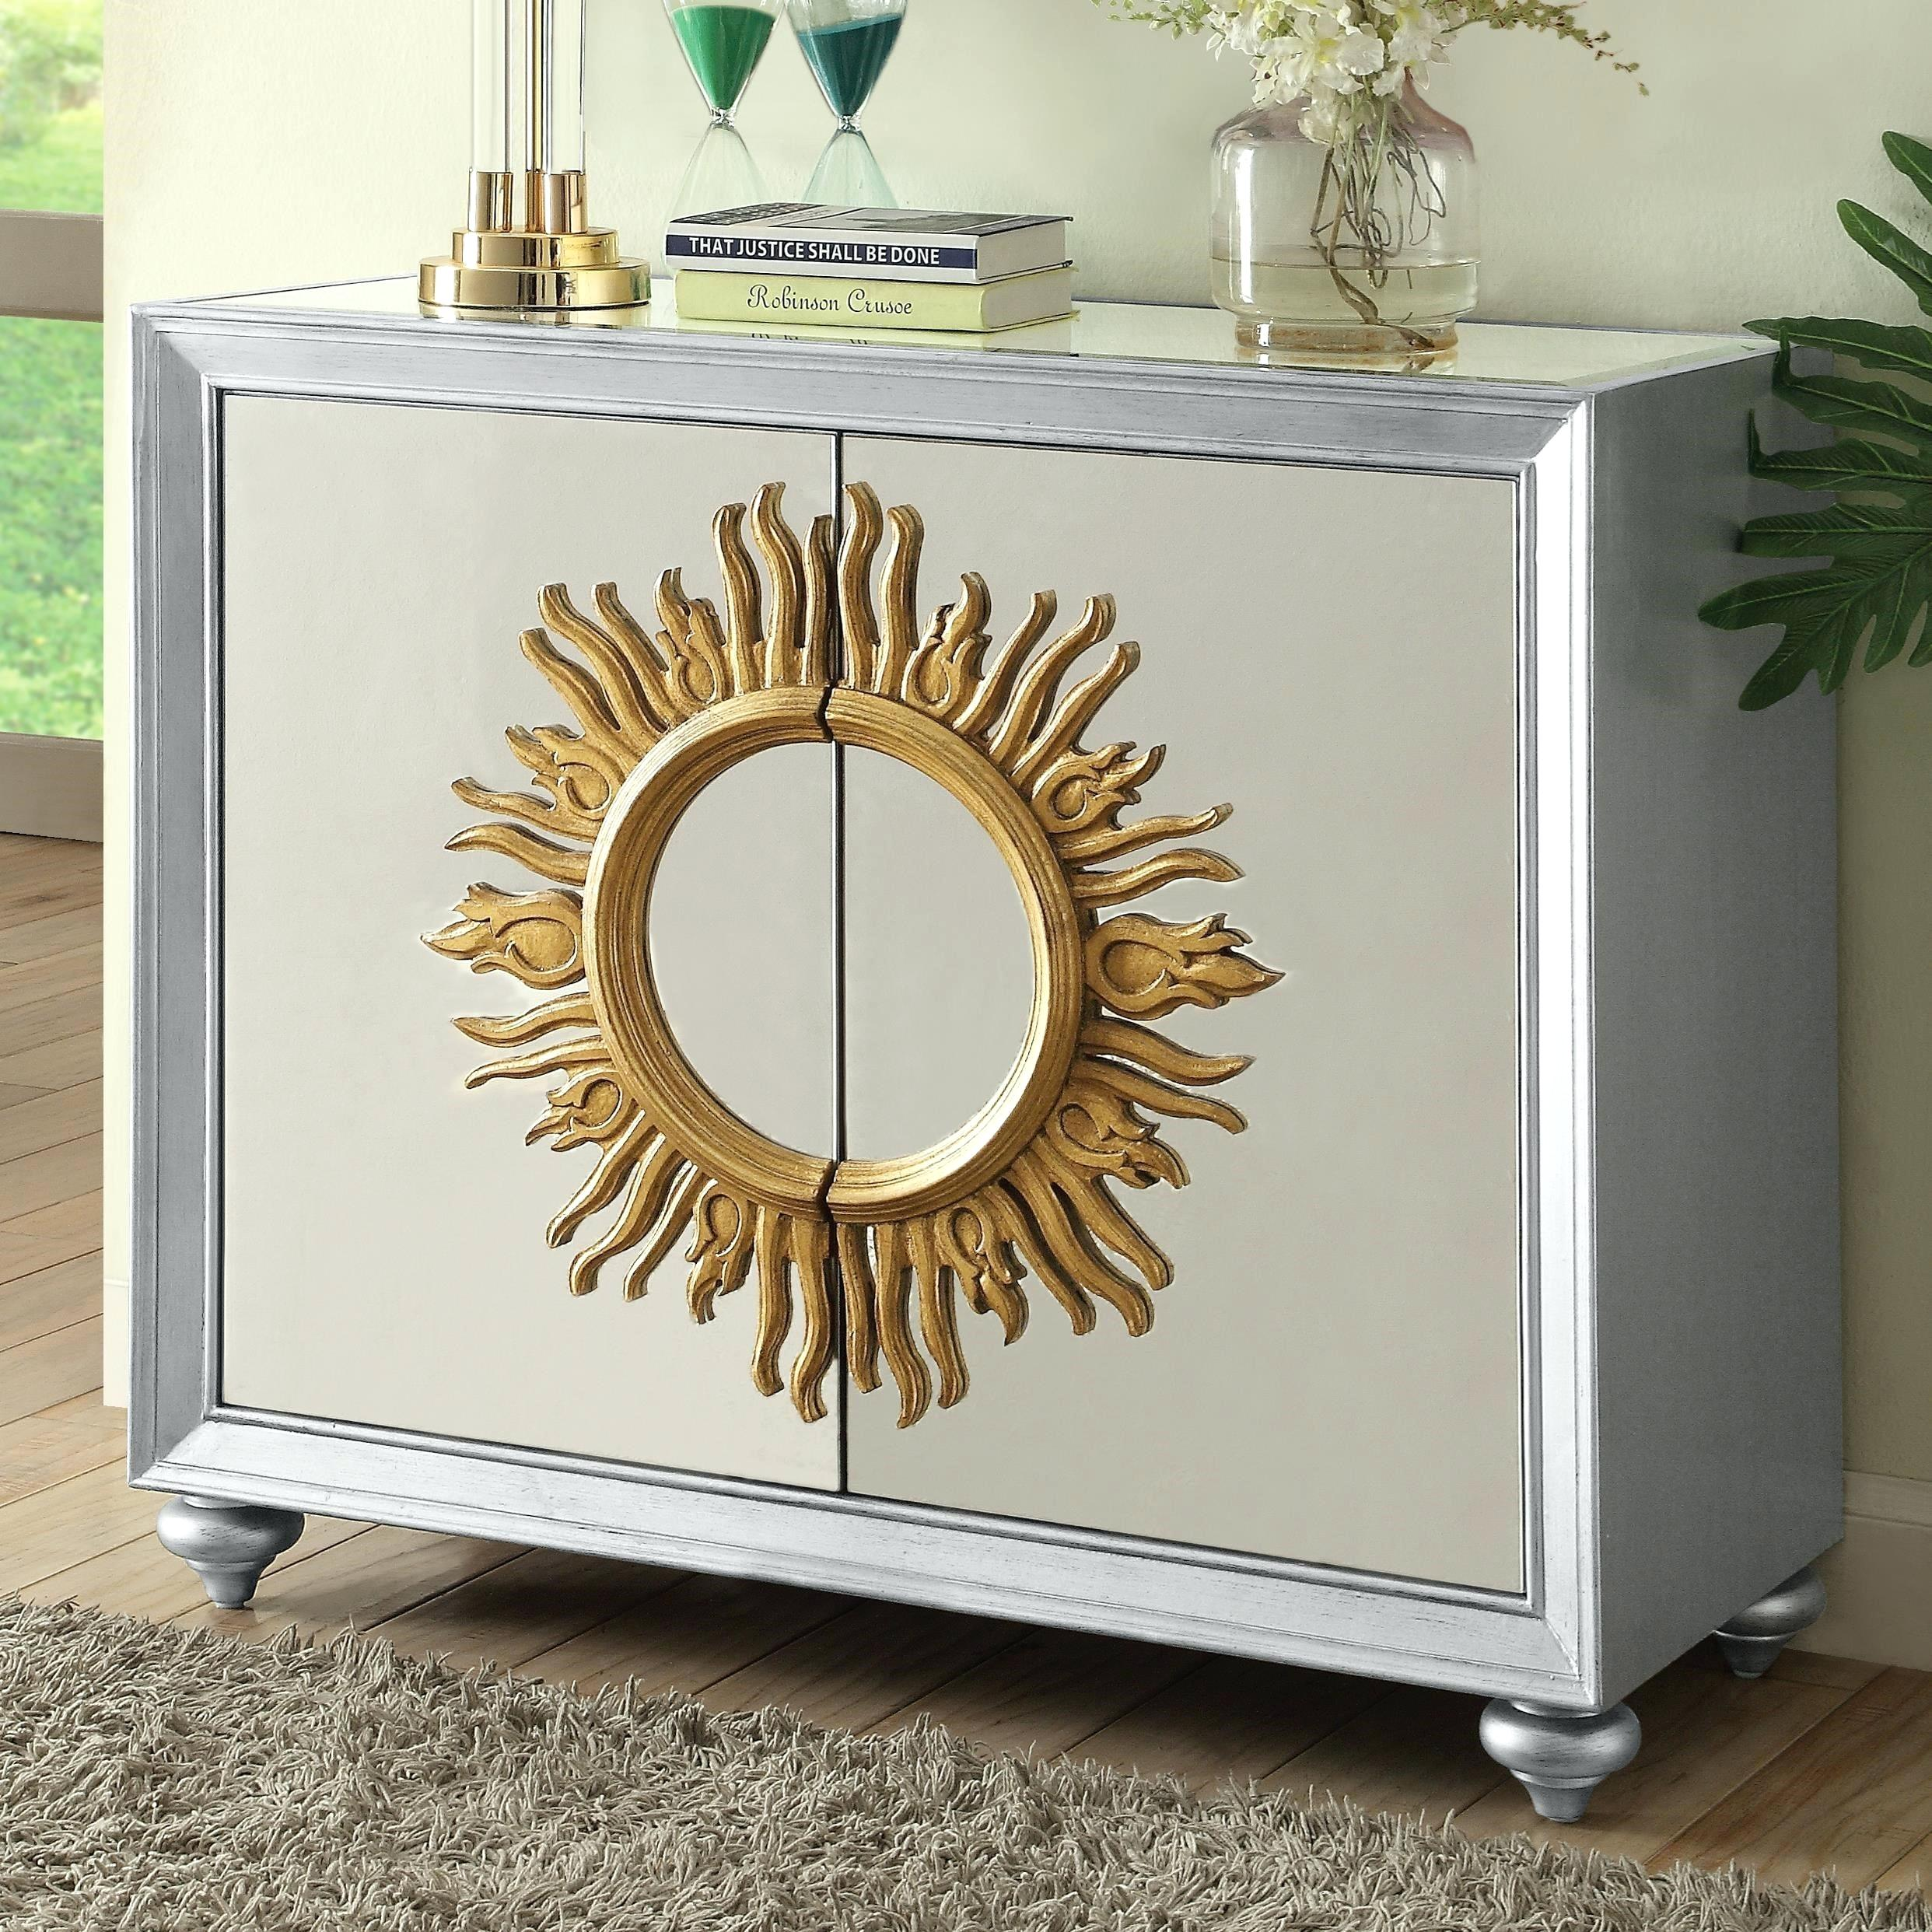 threshold accent cabinets cabinet coast tro coaster mirrored with sun design home ideas center christchurch candy table white teal storage lucite ashley furniture chairs small